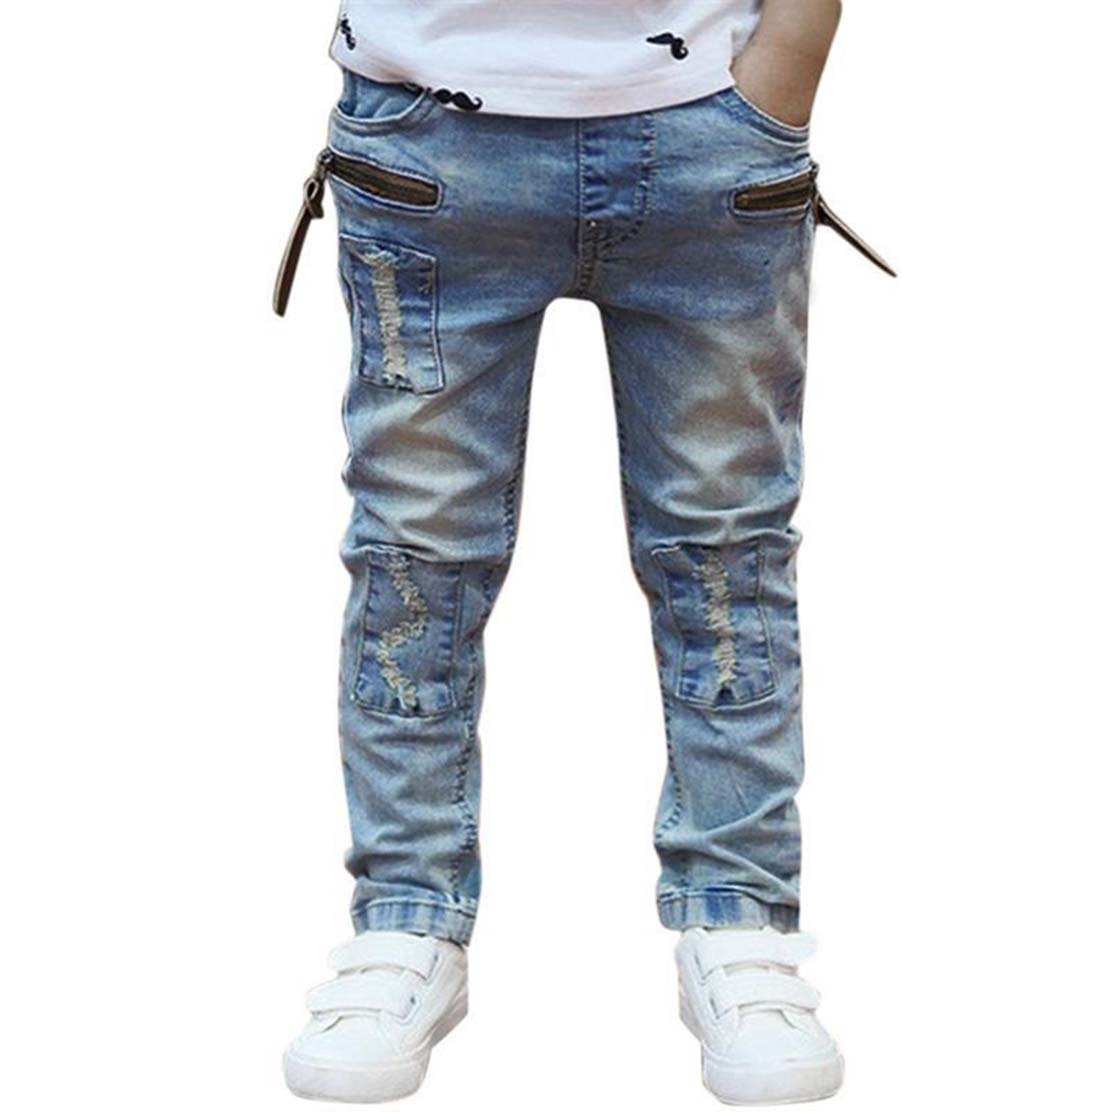 daqinghjxg 2018 New Solid Boys Kids Clothes Light-Colored Fashion Jeans Children Trousers